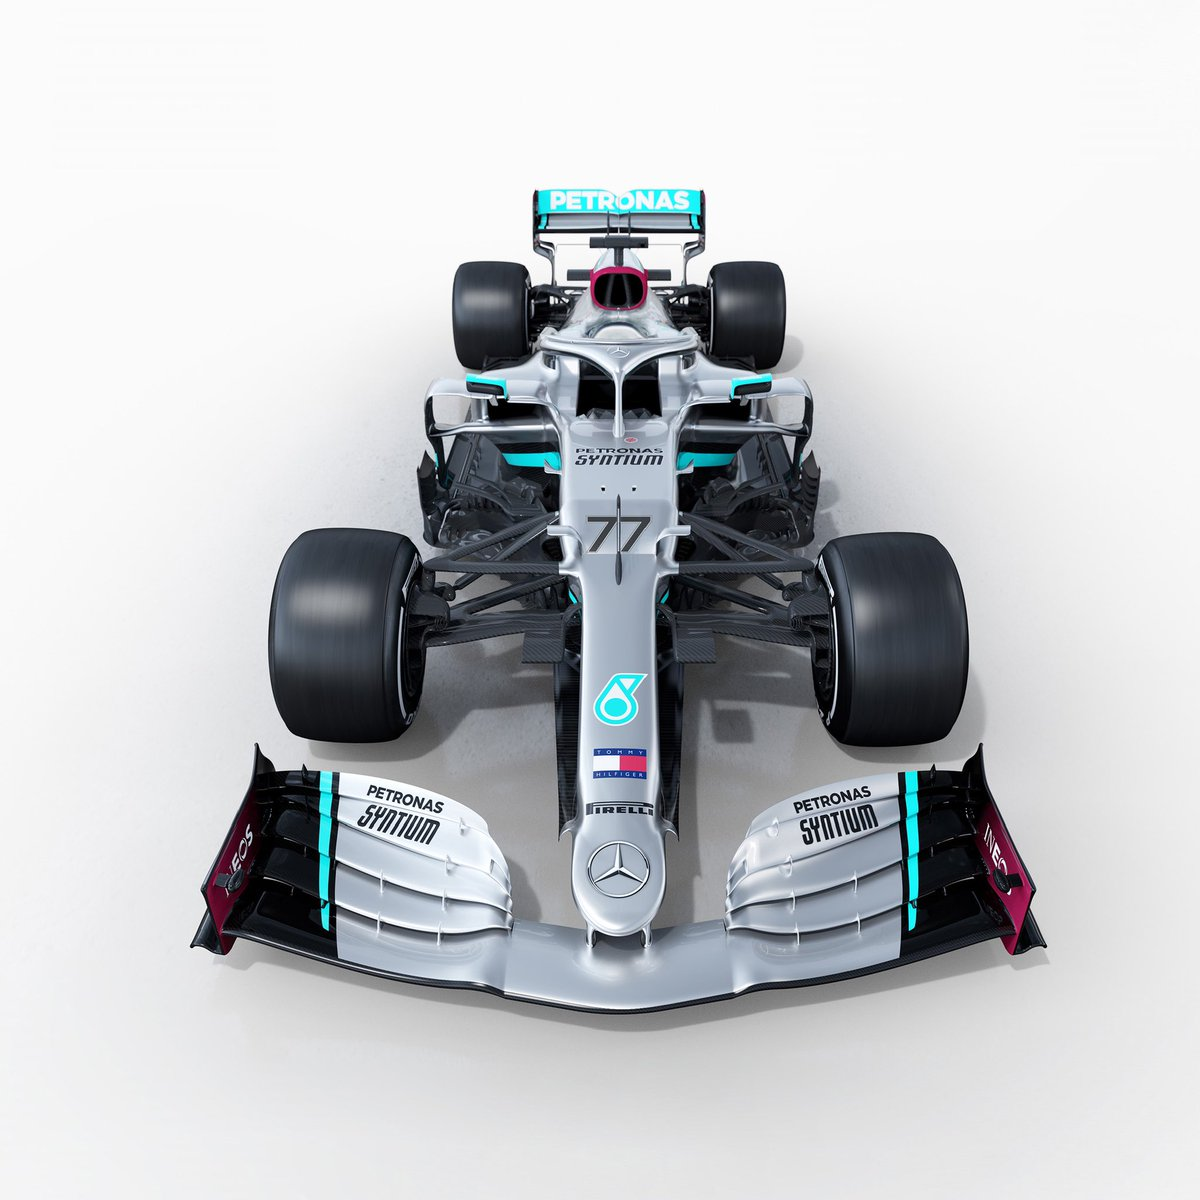 #W11 🔥 Excited to get behind the wheel 👀 https://t.co/w8TgCZnYLY